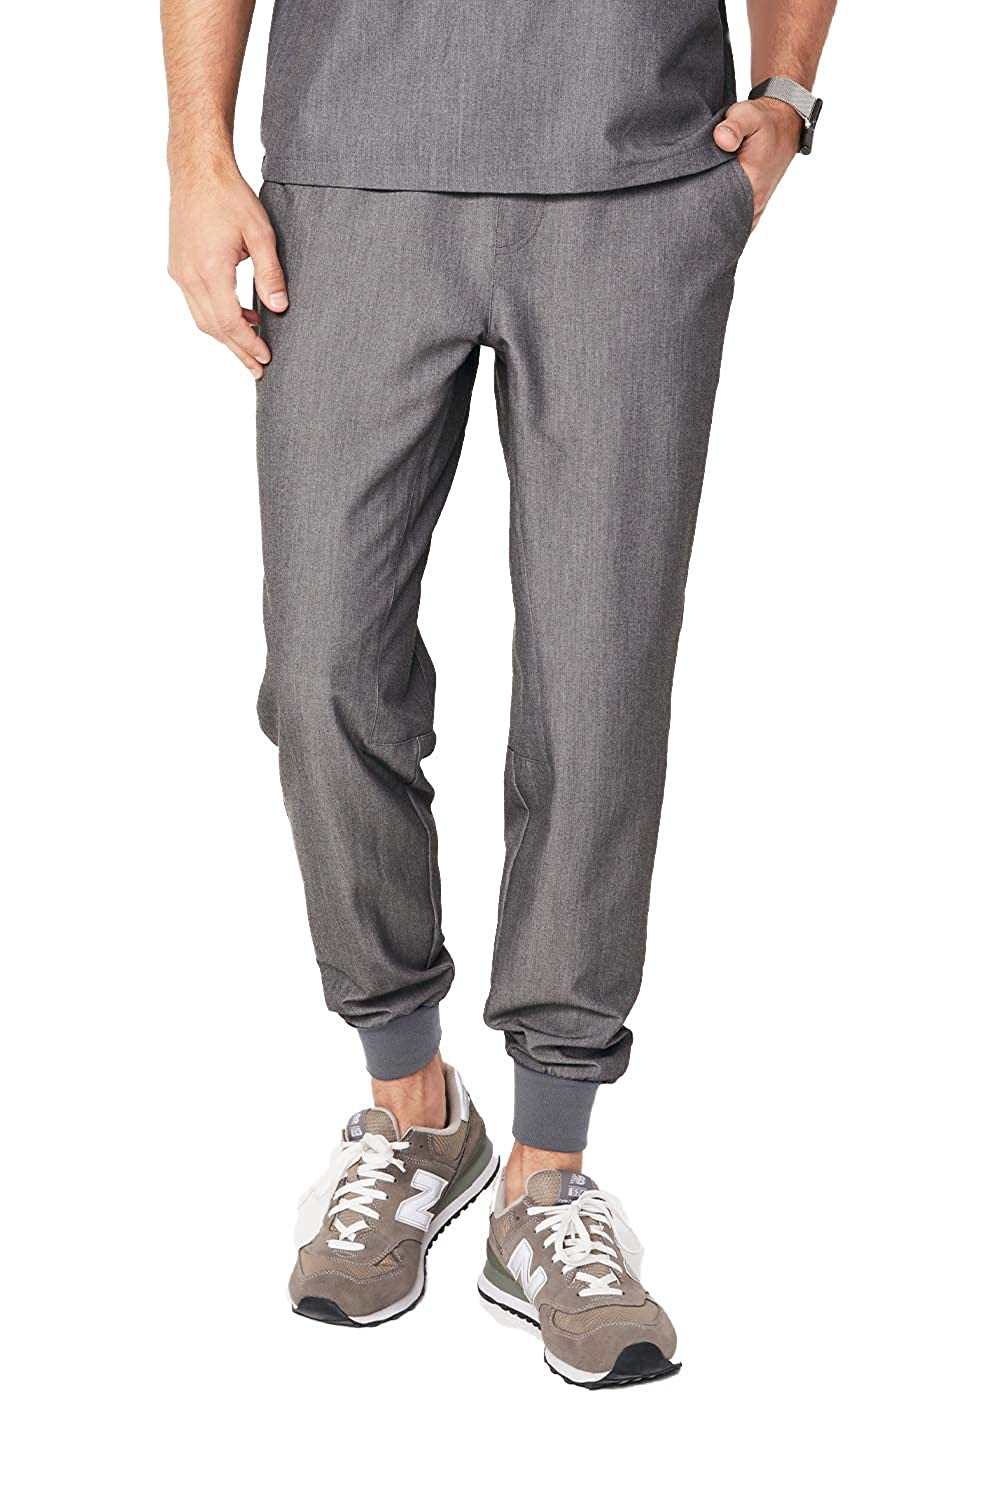 FIGS Tansen 2.0 Jogger Style Athletic /& Medical Scrub AntiWrinkle Pants for Men